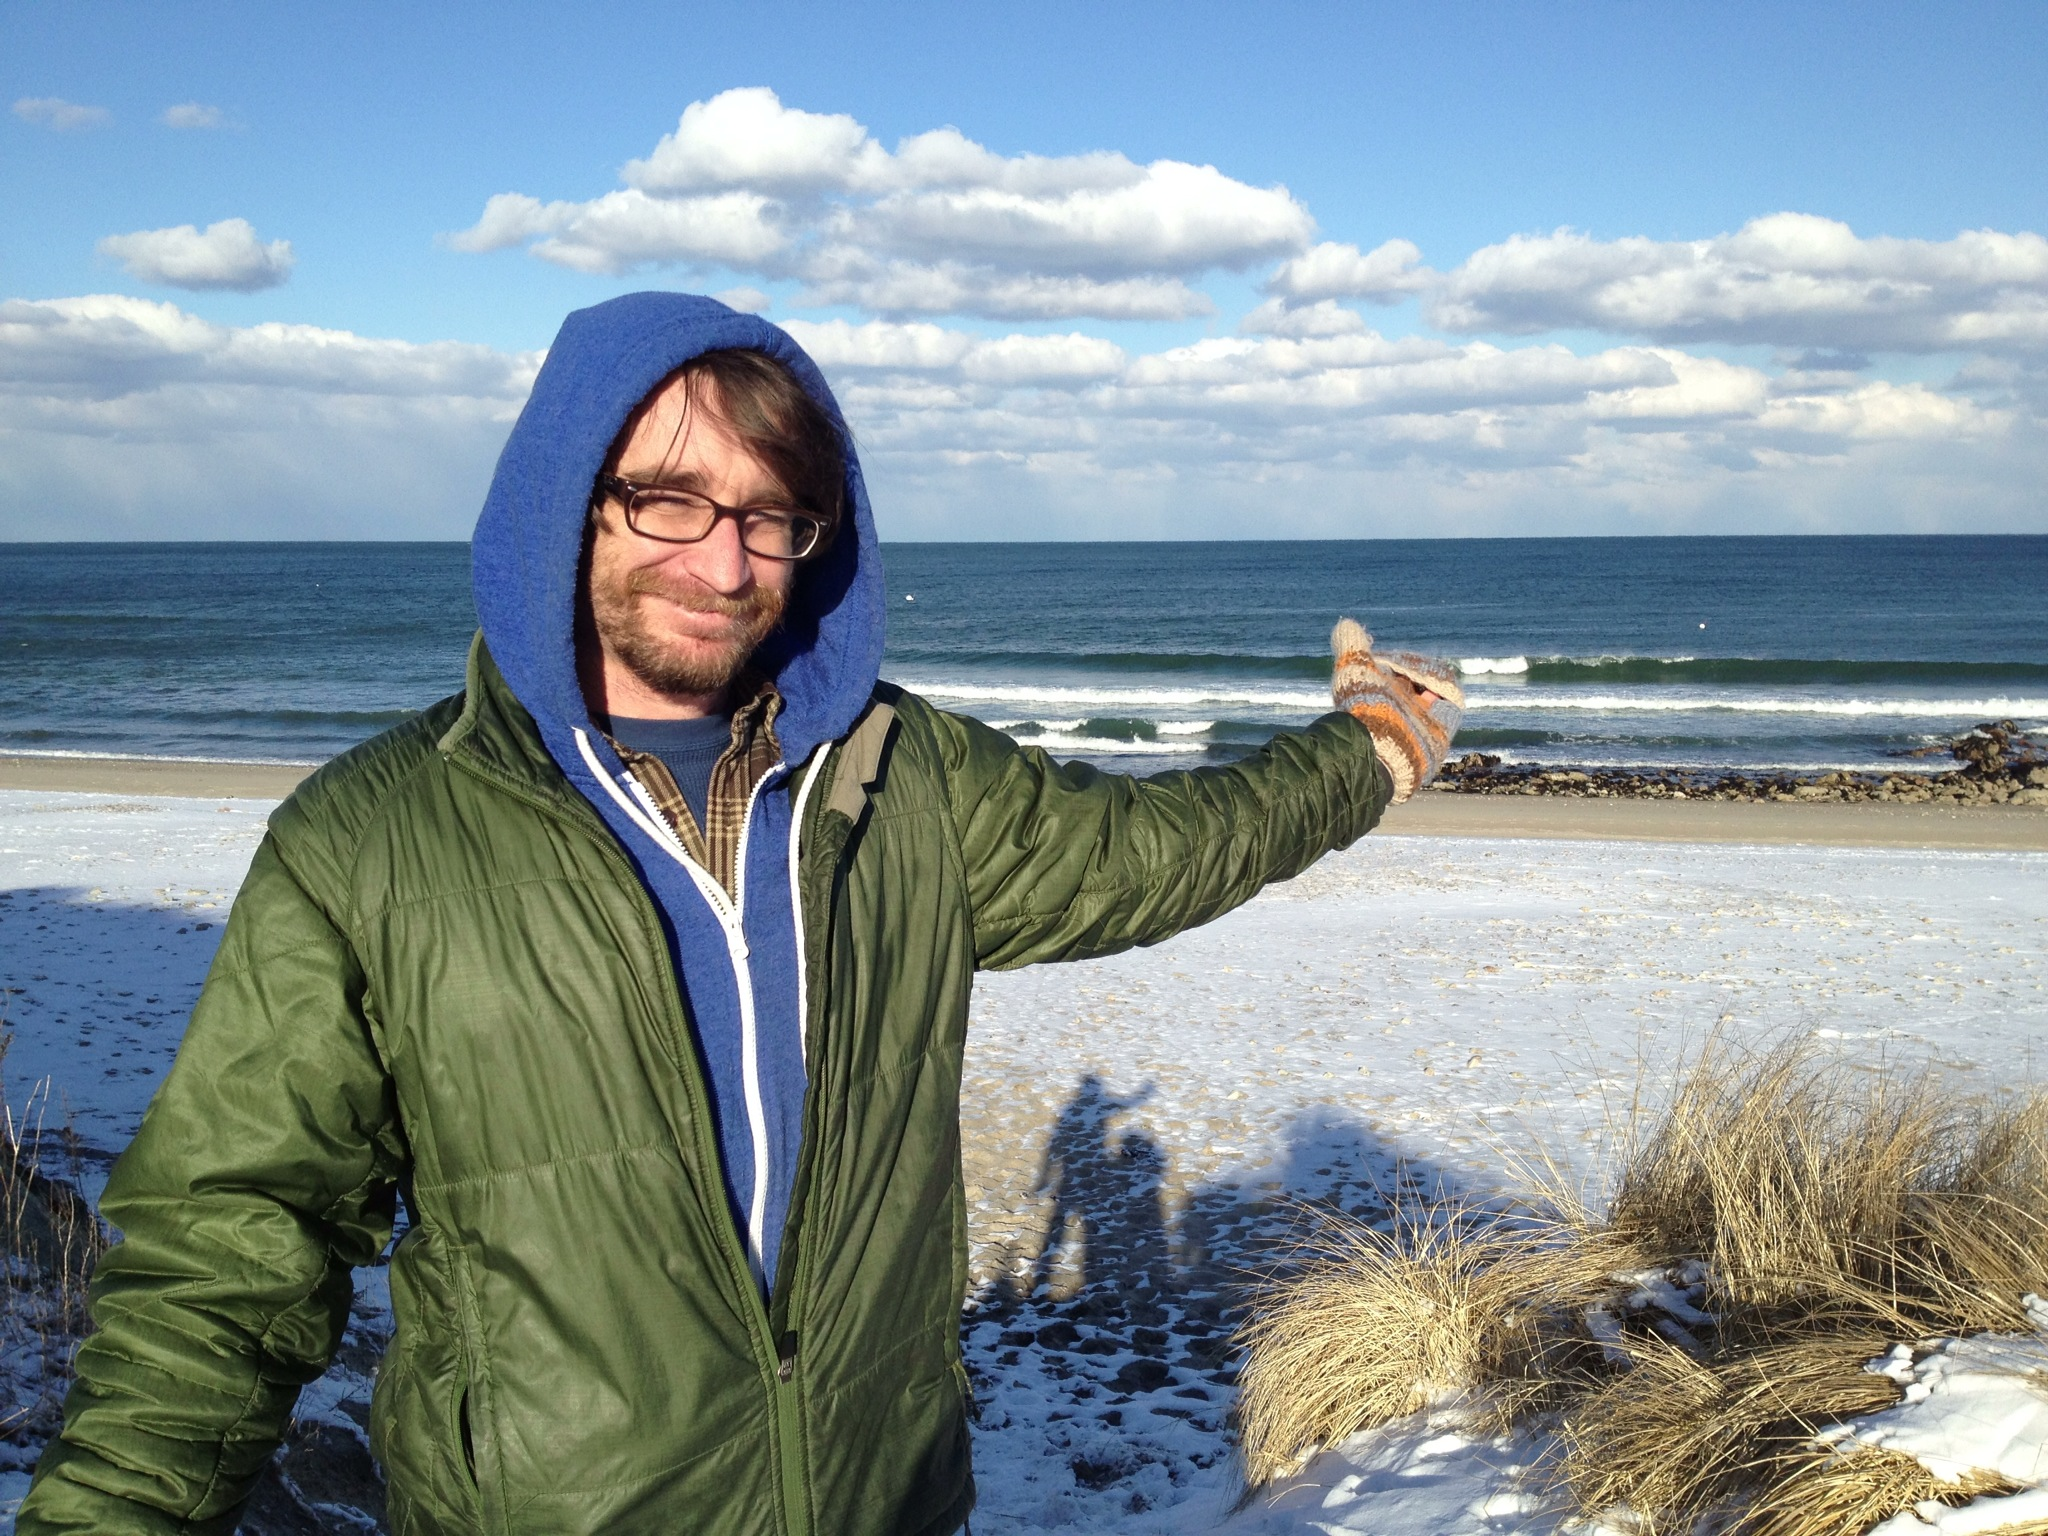 A snow covered beach in Manomet Beach, Massachusetts.